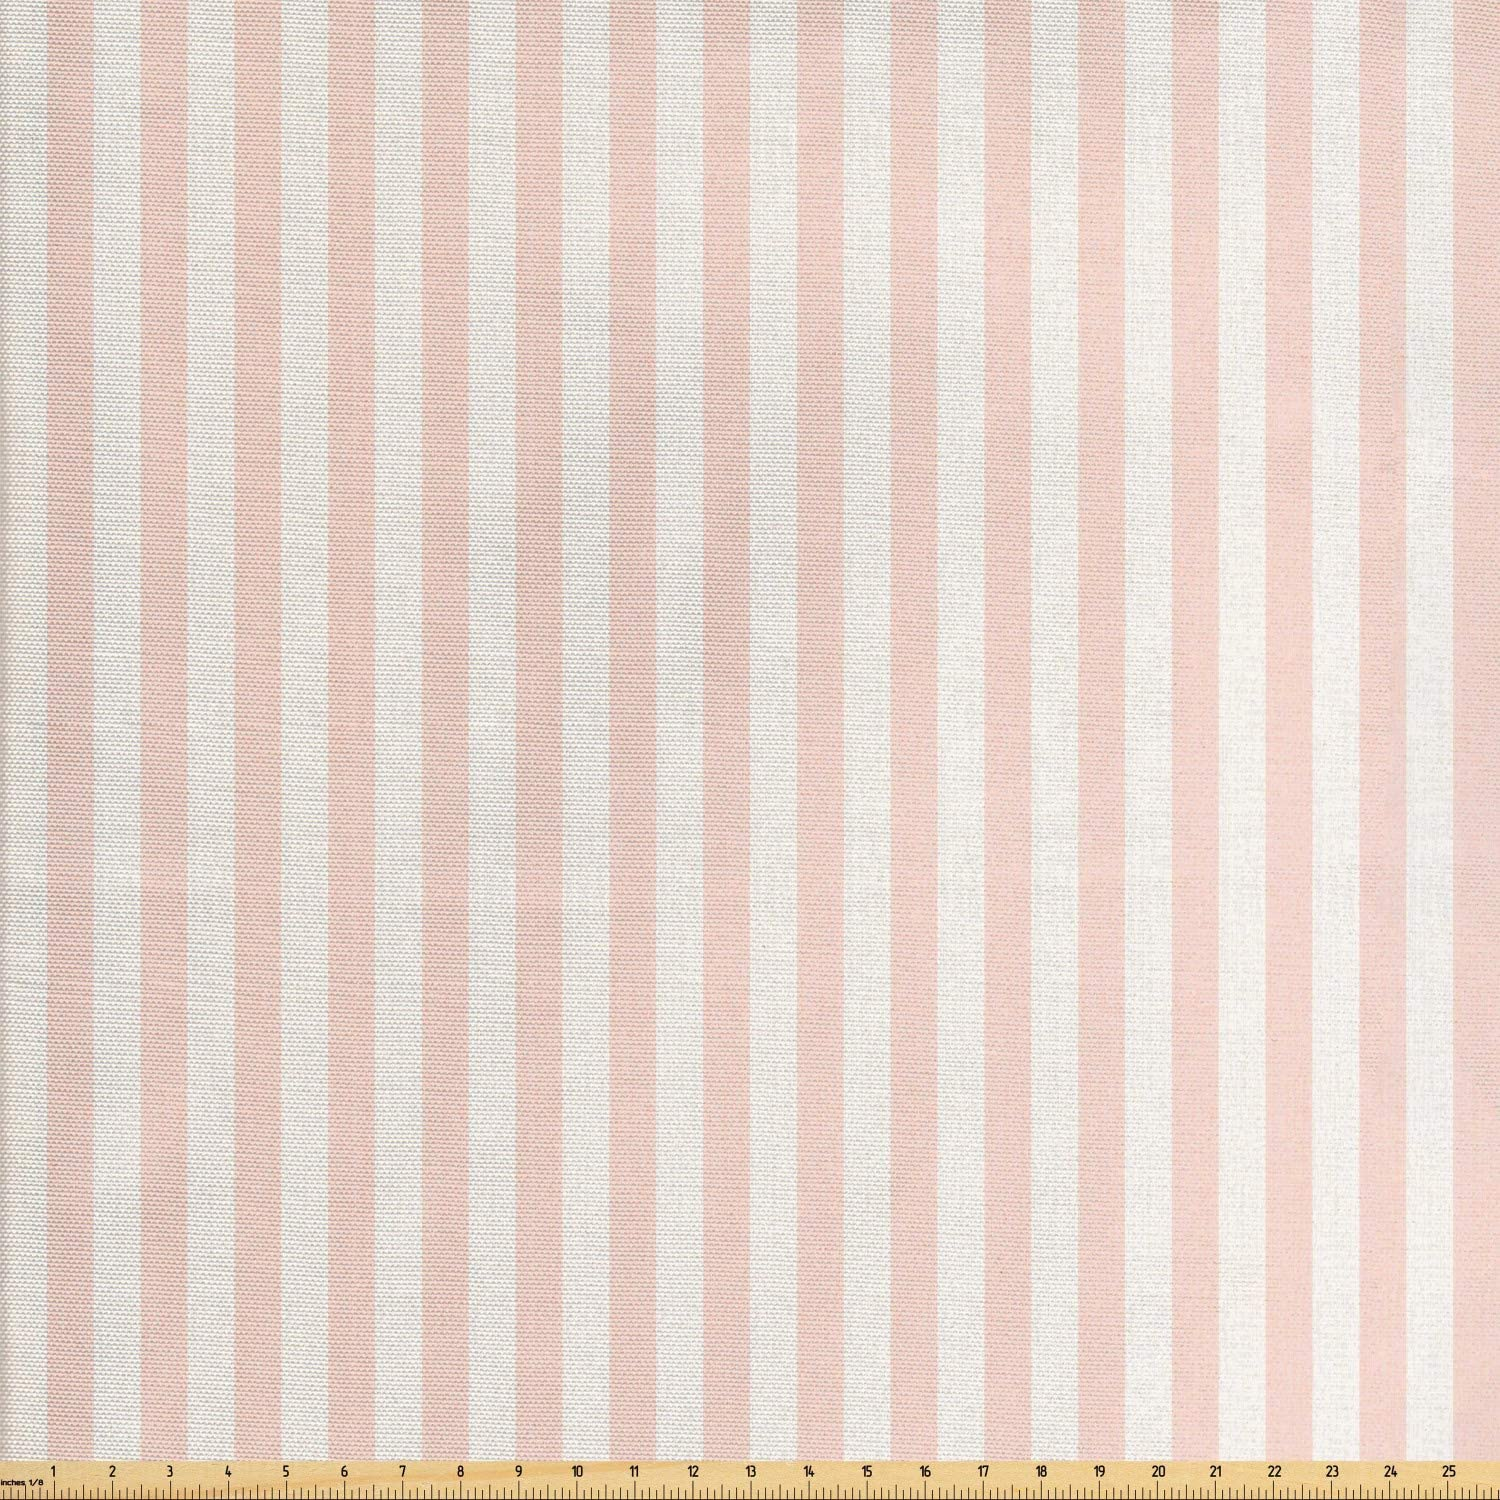 Lunarable Striped Fabric by The Yard, Vintage Inspirations Geometric Arrangement Grunge Line Pattern Monochrome Ornate, Decorative Fabric for Upholstery and Home Accents, 1 Yard, White Blush